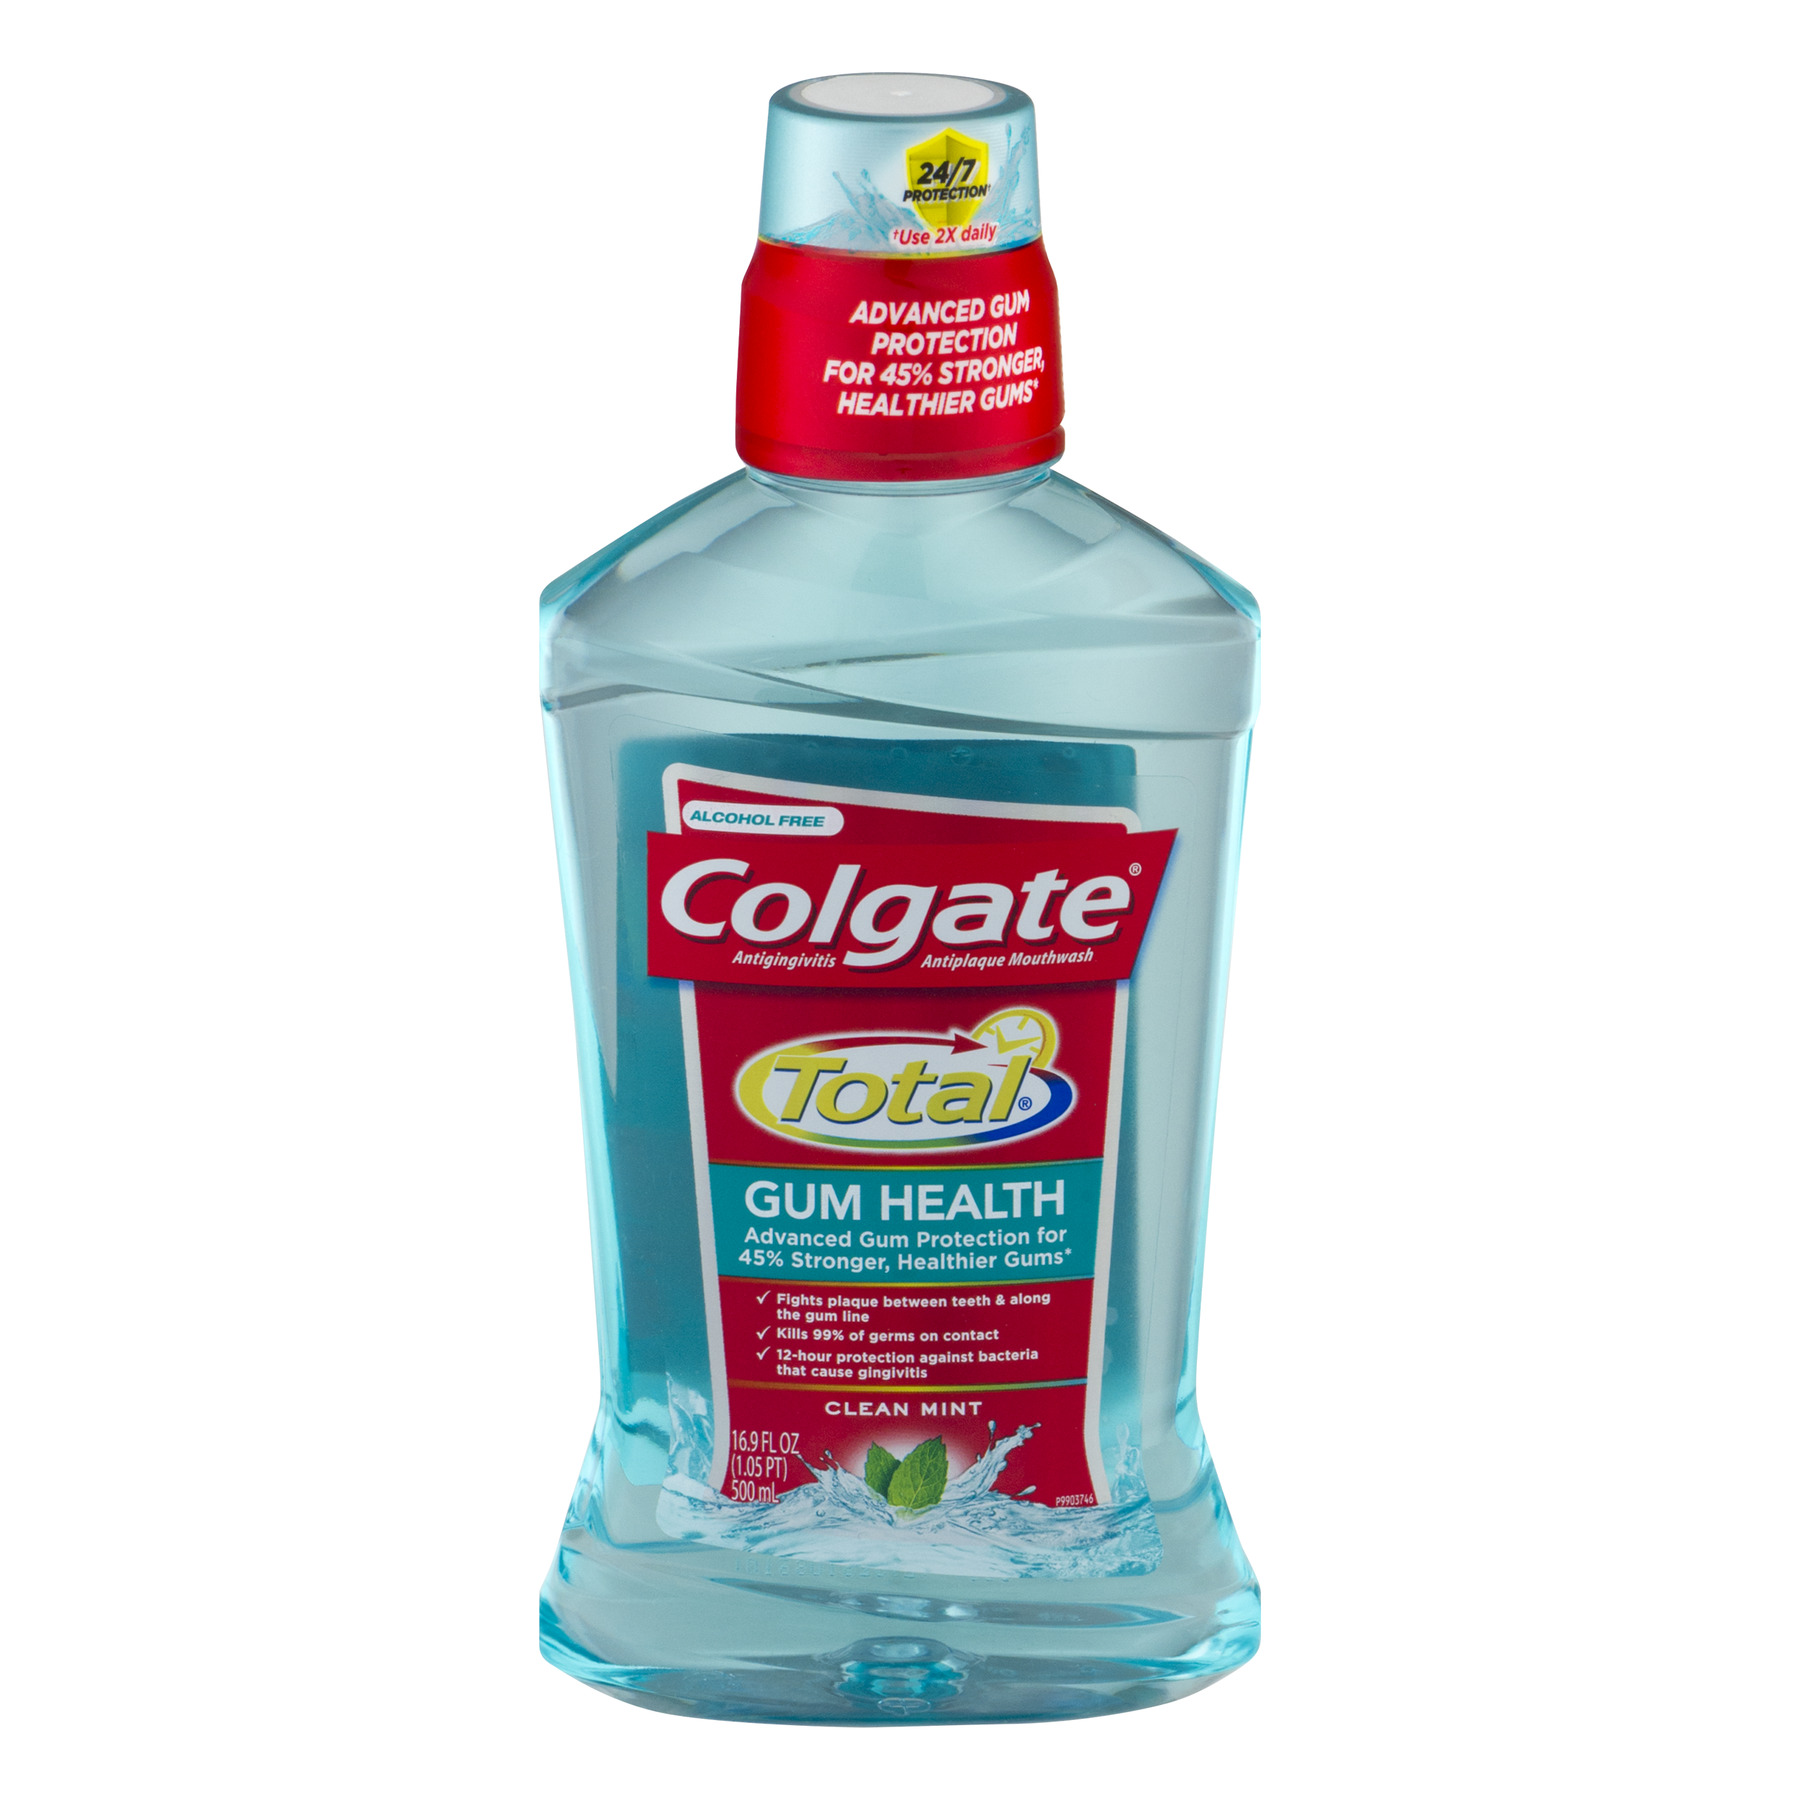 Colgate Total for Gum Health Mouthwash, Clean Mint - 500mL, 16.9 fl oz